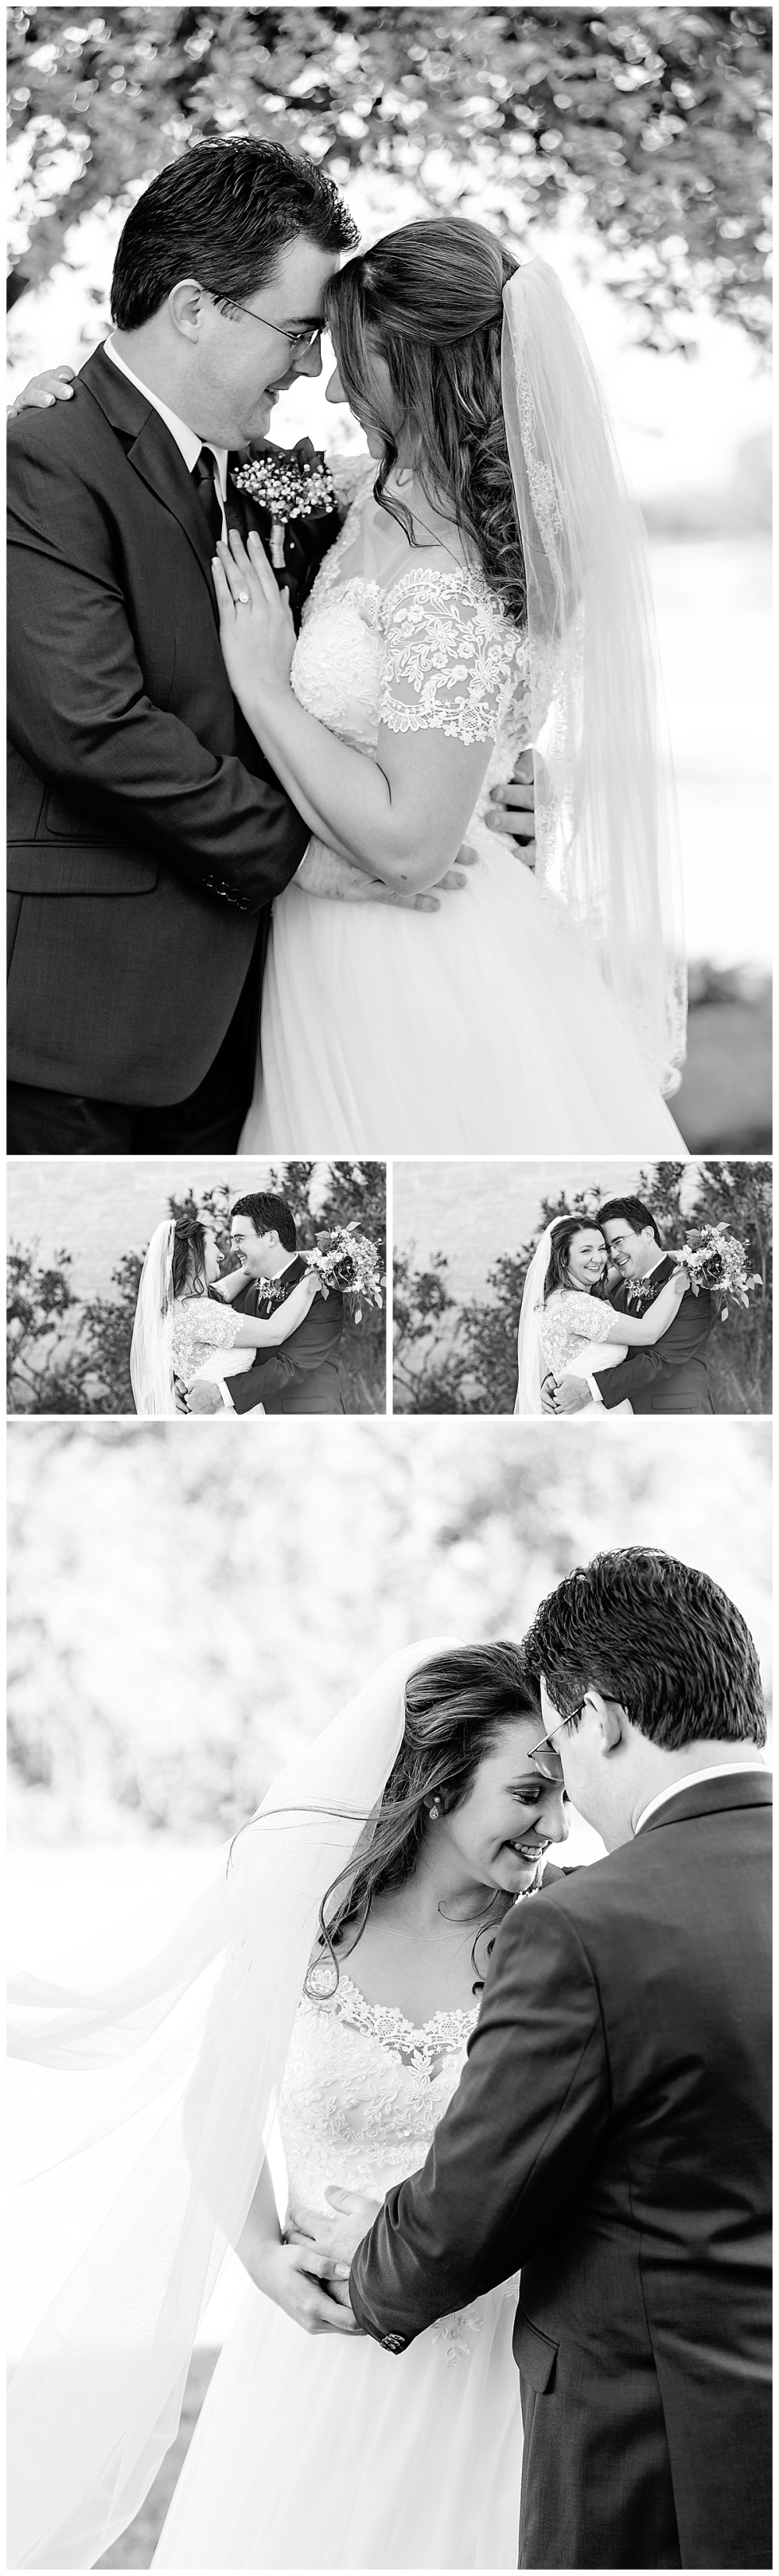 Wedding-Photographer-The-Legacy-Jacksonville-Texas-Arron-Krystal-Carly-Barton-Photography_0019.jpg